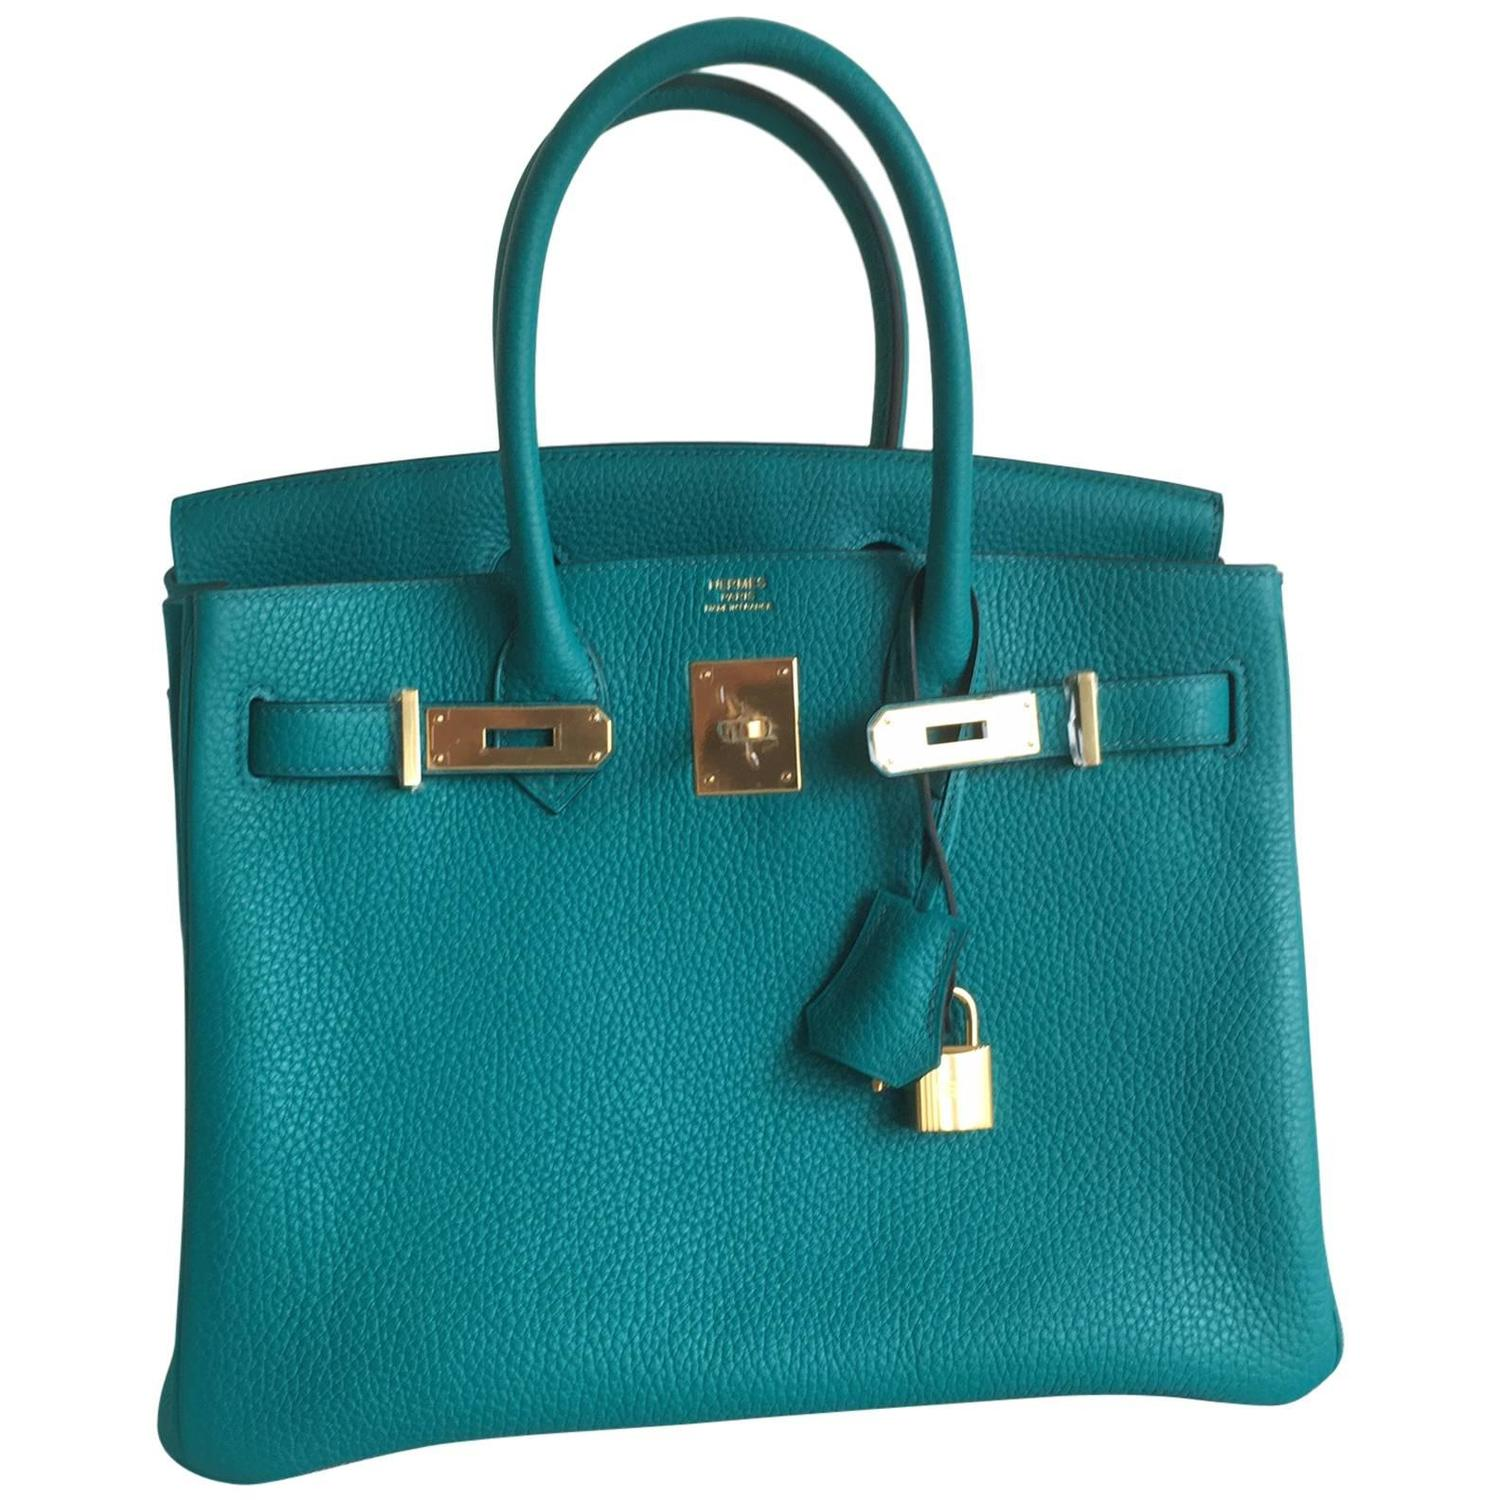 Hermes Birkin Bag 30cm Glycine with Gold Hardware Never Carried